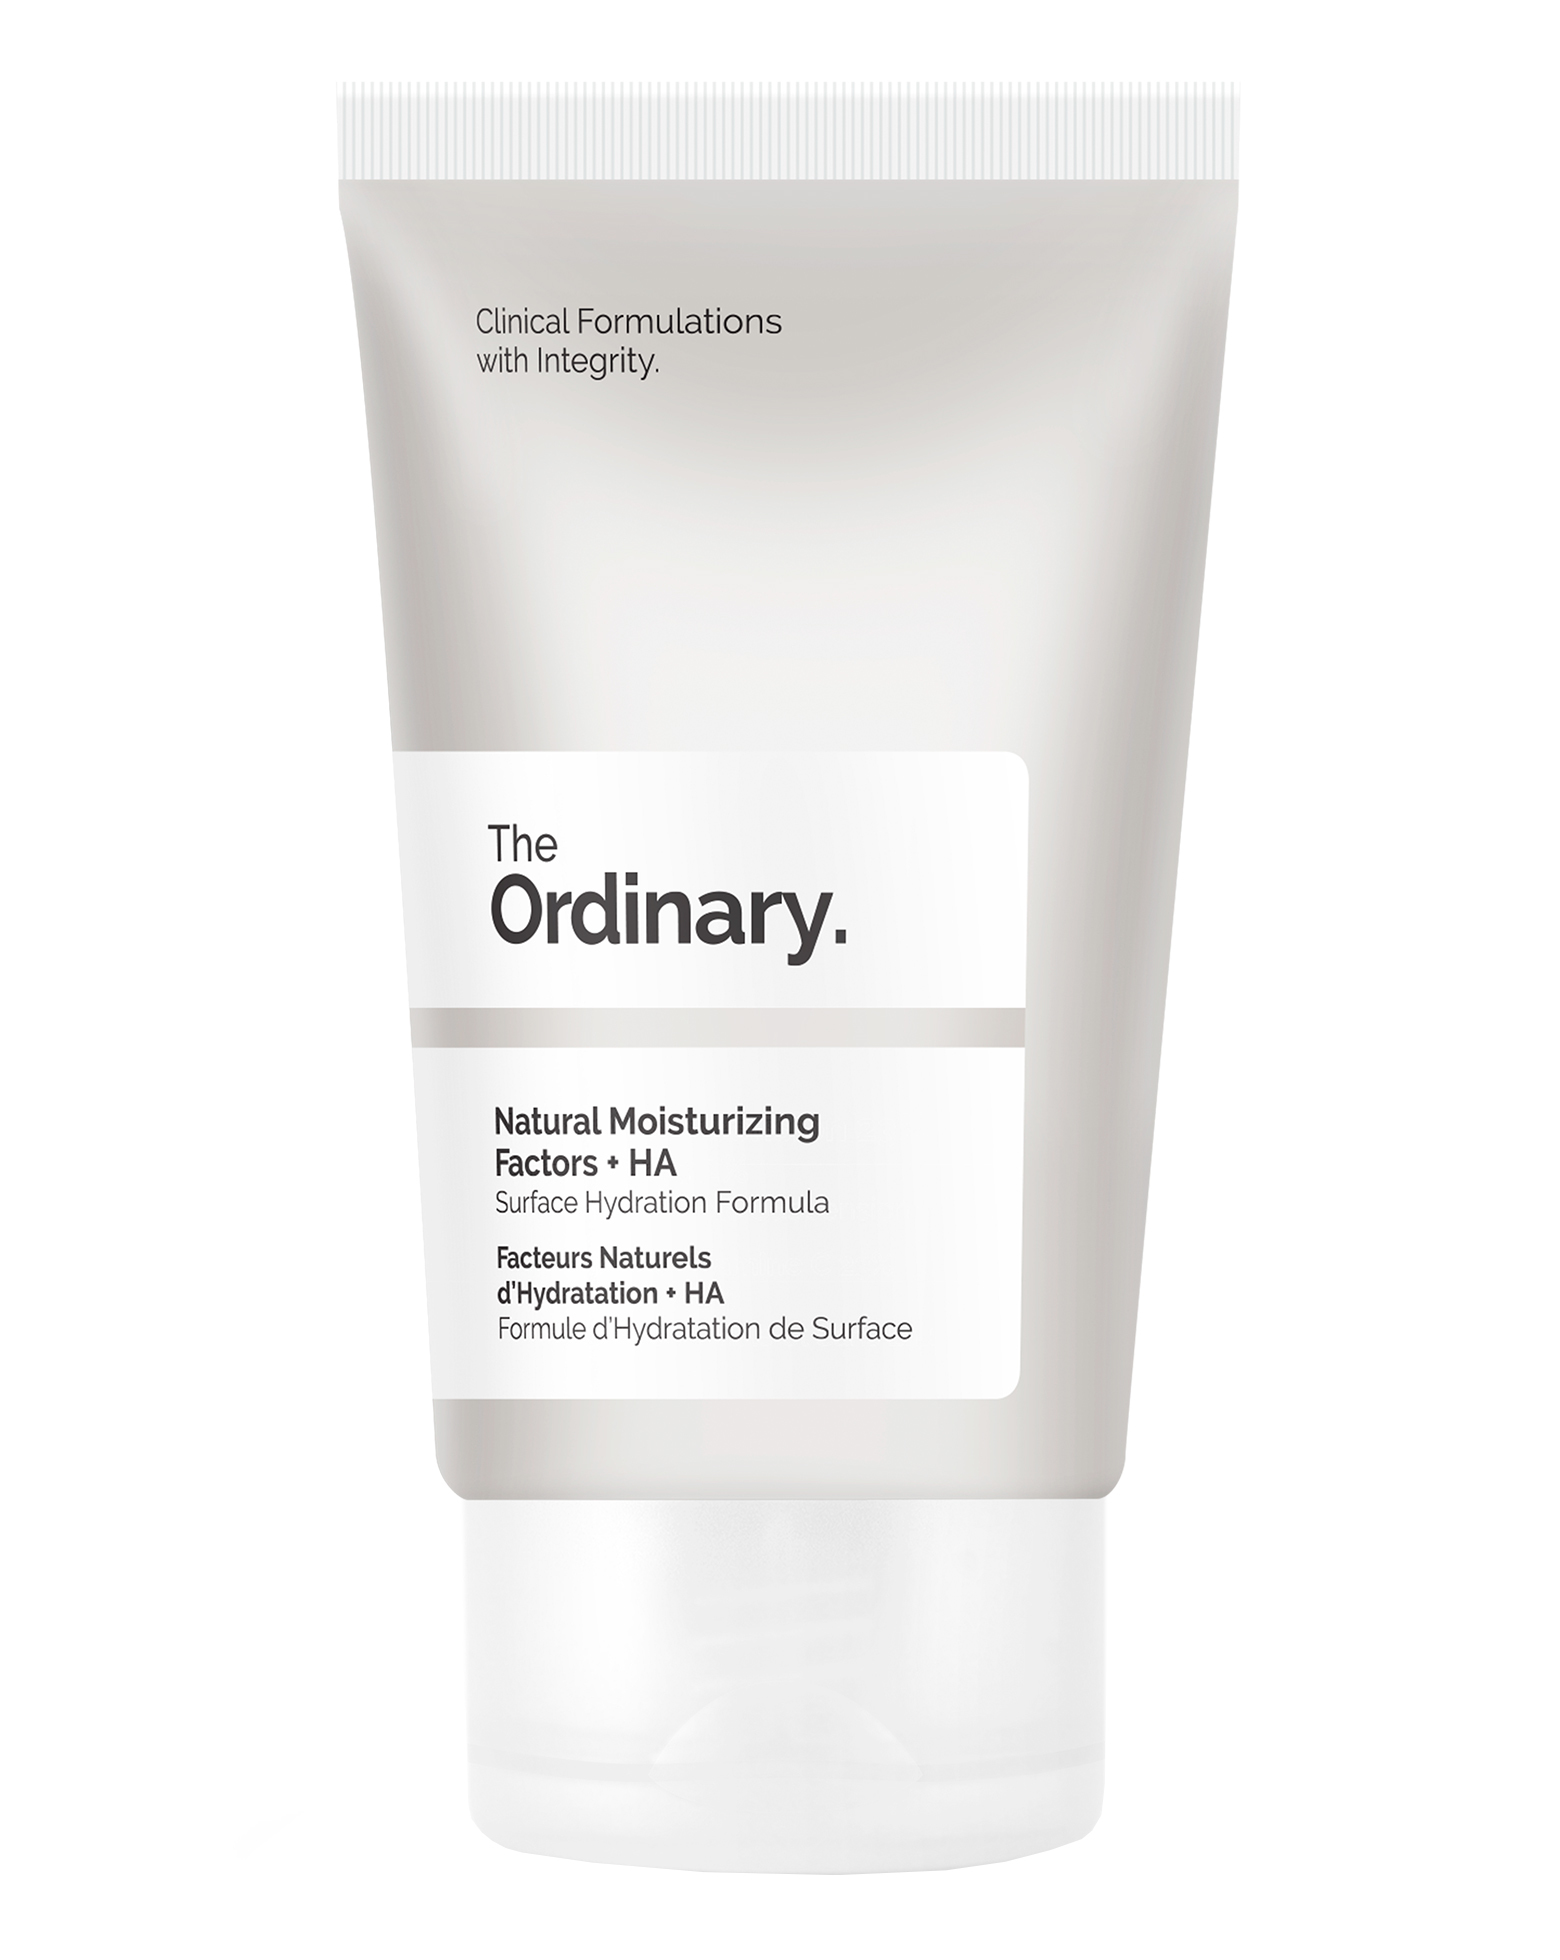 Крем увлажняющий The ordinary Natural Moisturizing Factors + HA 30ml